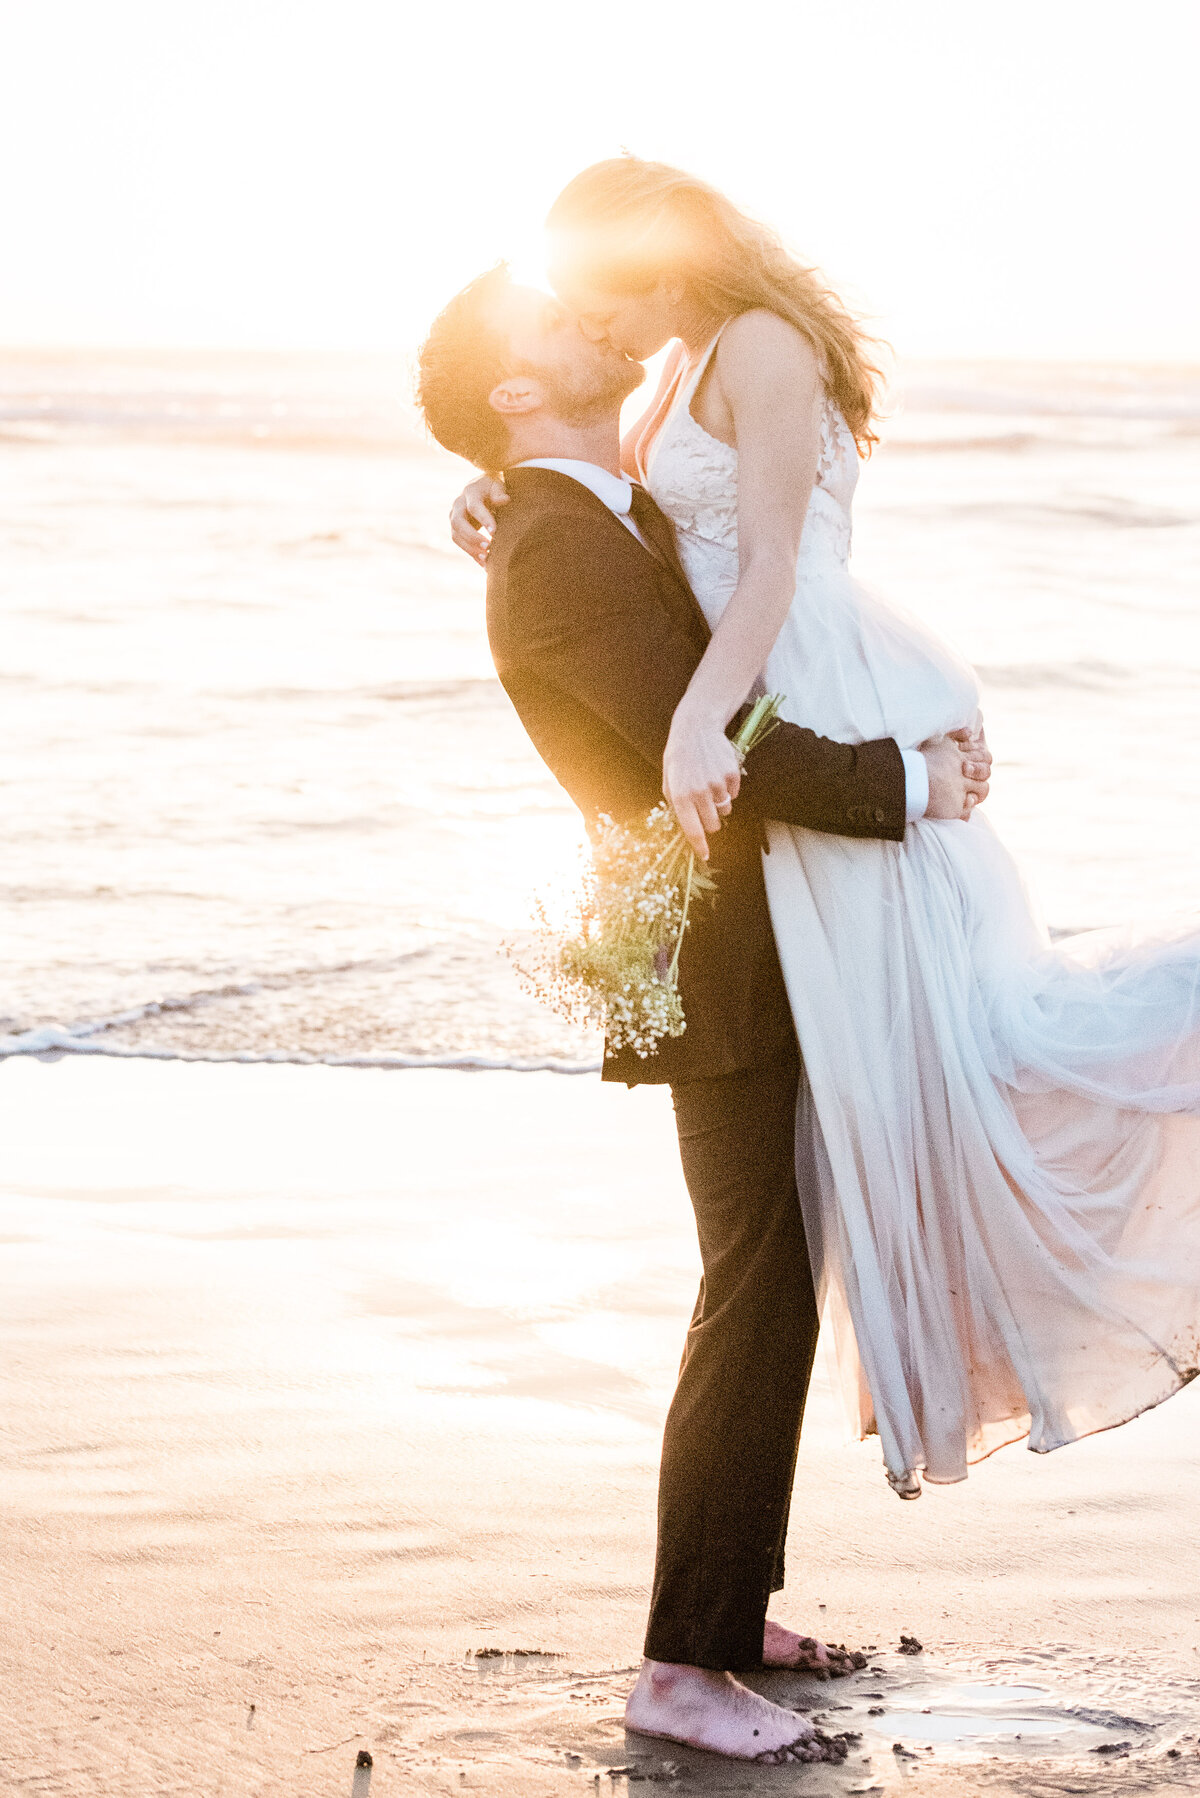 Cannon-Beach-Elopement-Photographer-71